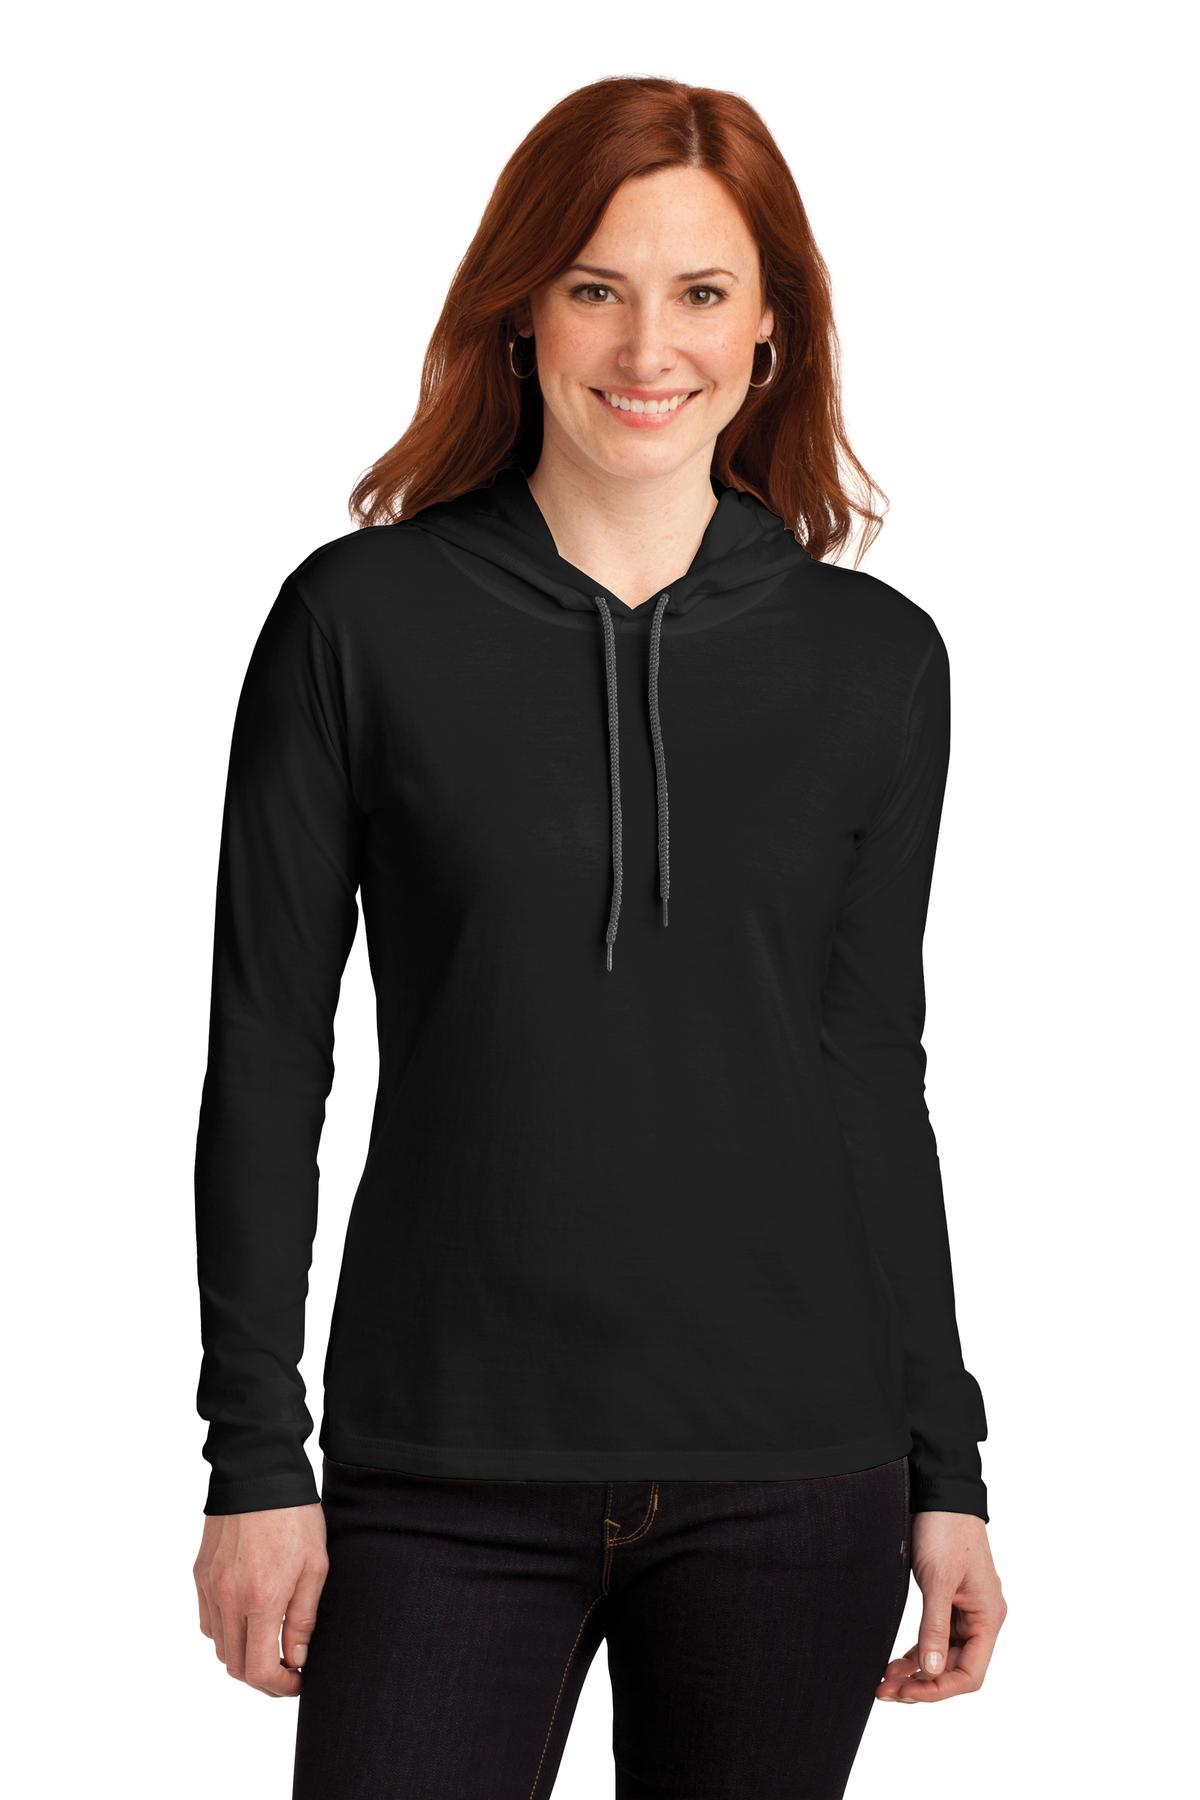 Anvil ®  Ladies 100% Combed Ring Spun Cotton Long Sleeve Hooded T-Shirt. 887L - Black/ Dark Grey